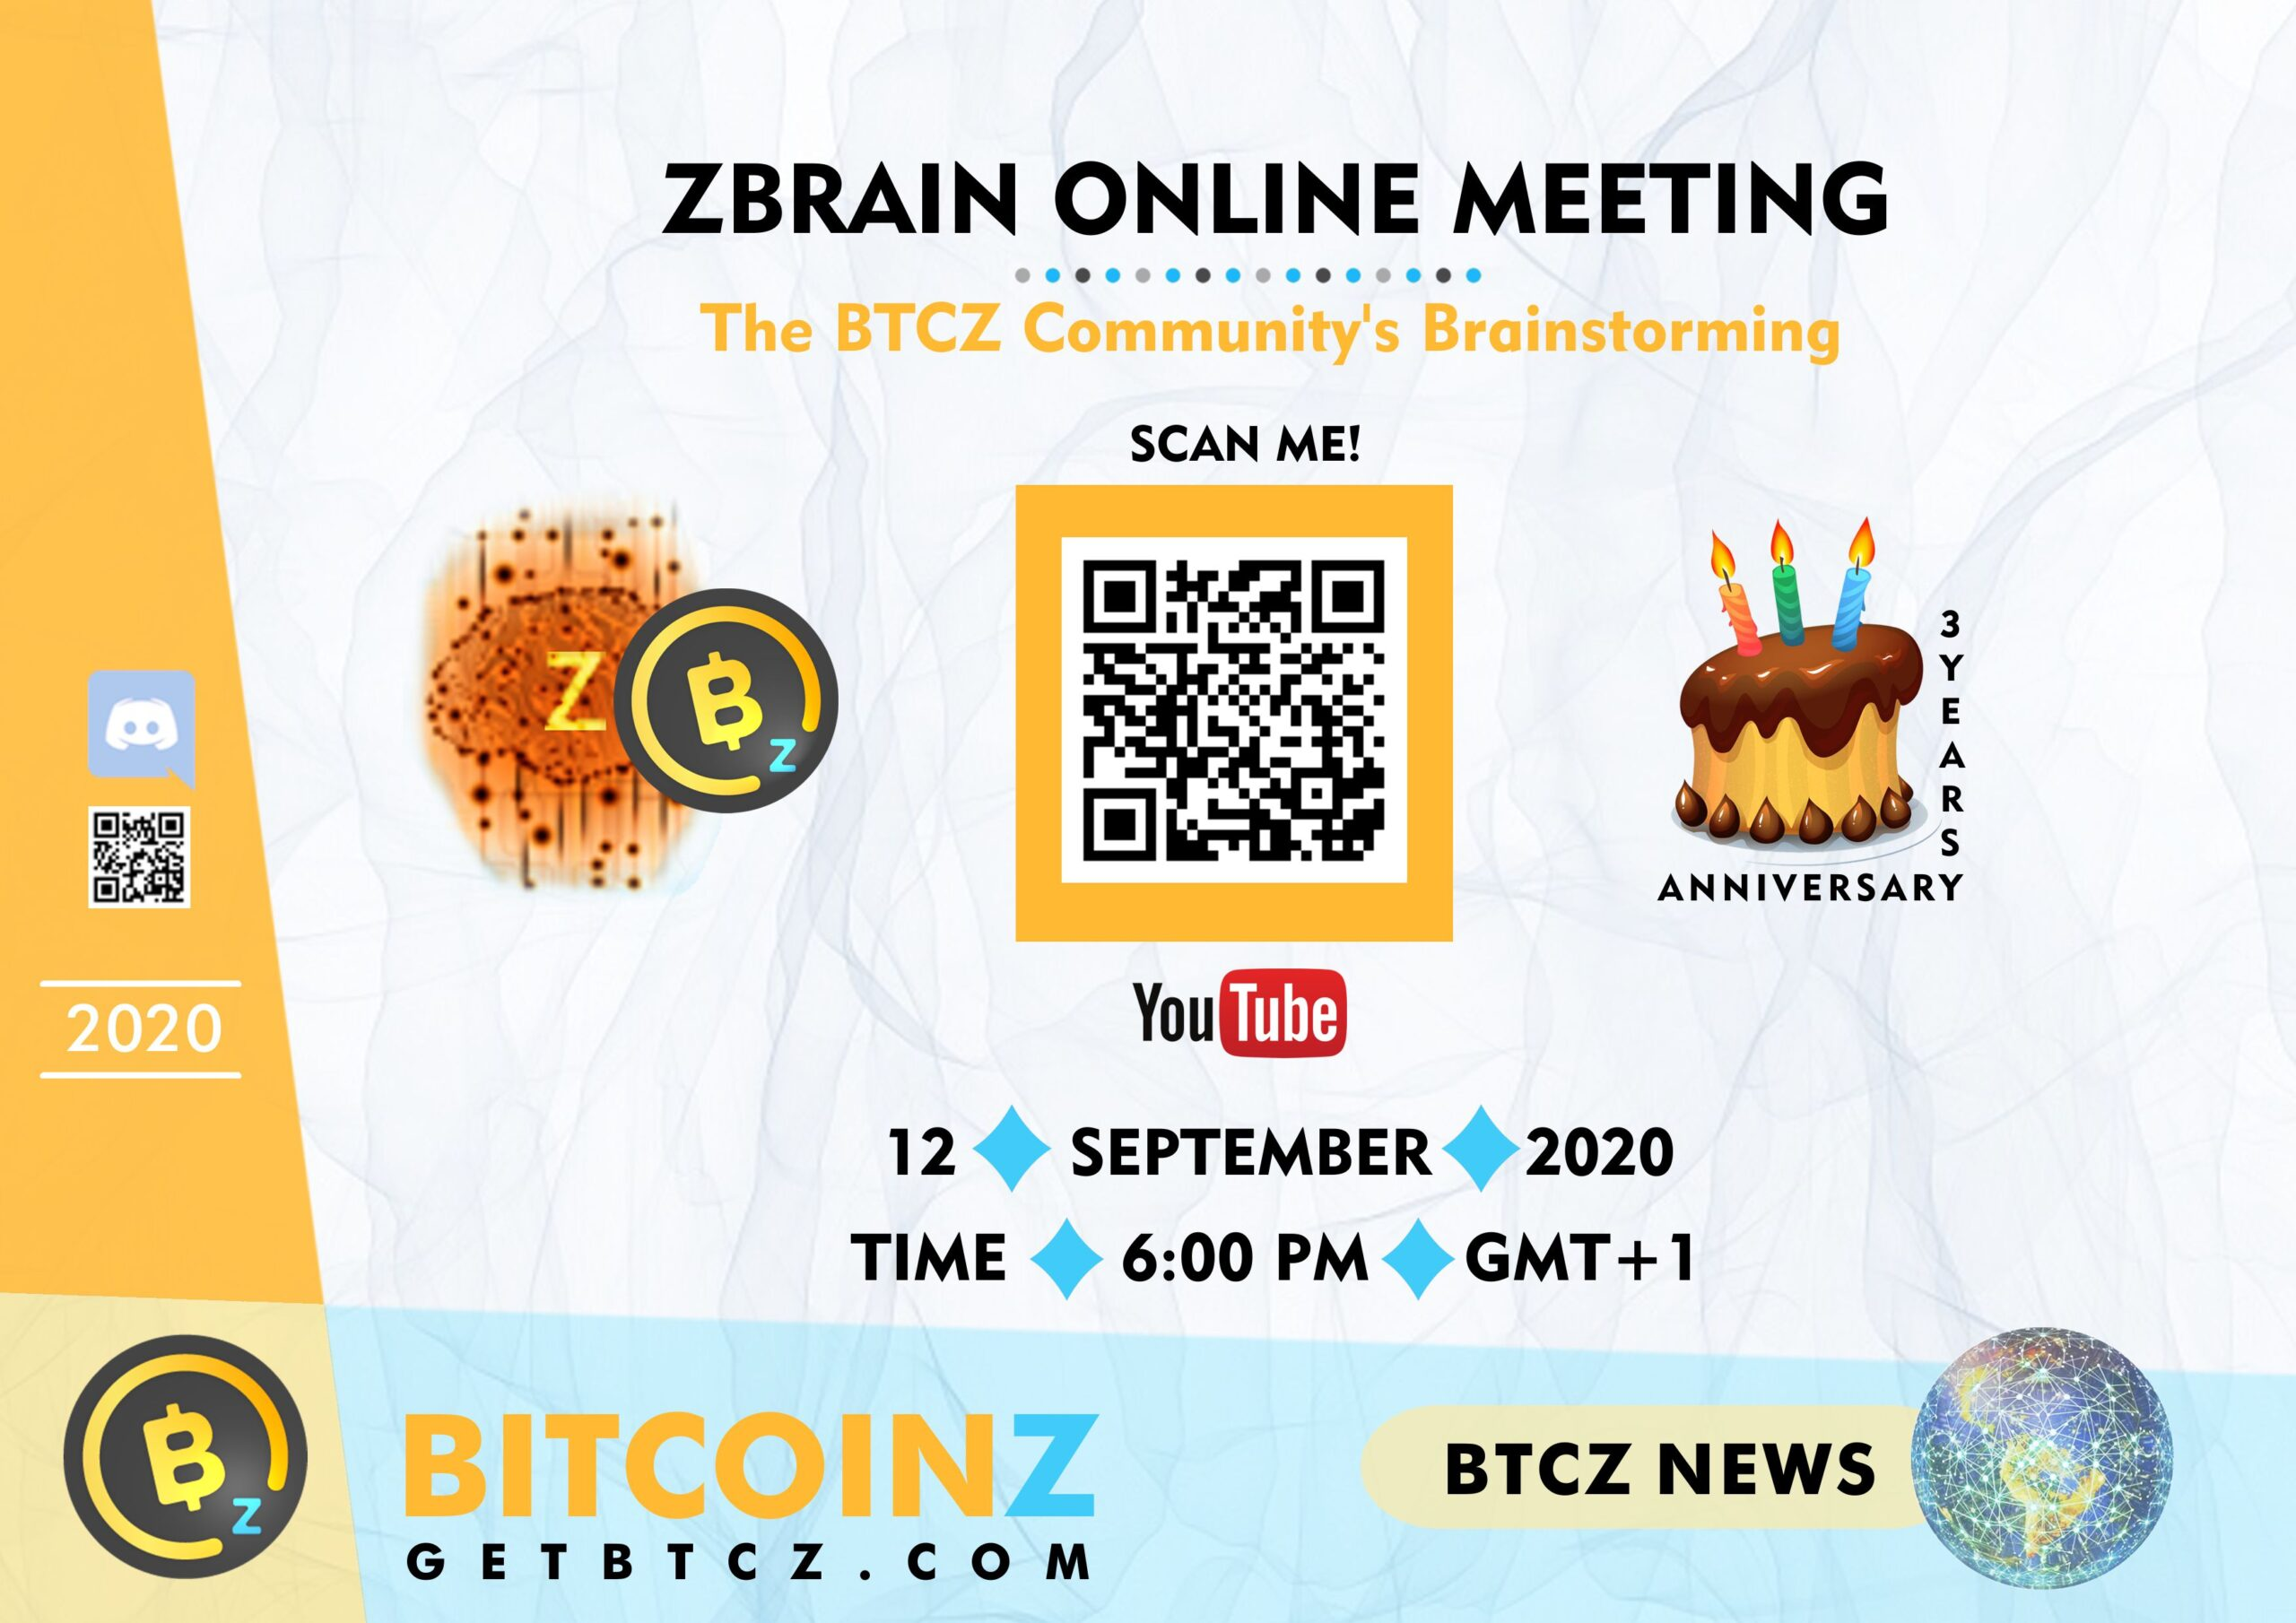 Invitation Zbrain Meeting September 2020!